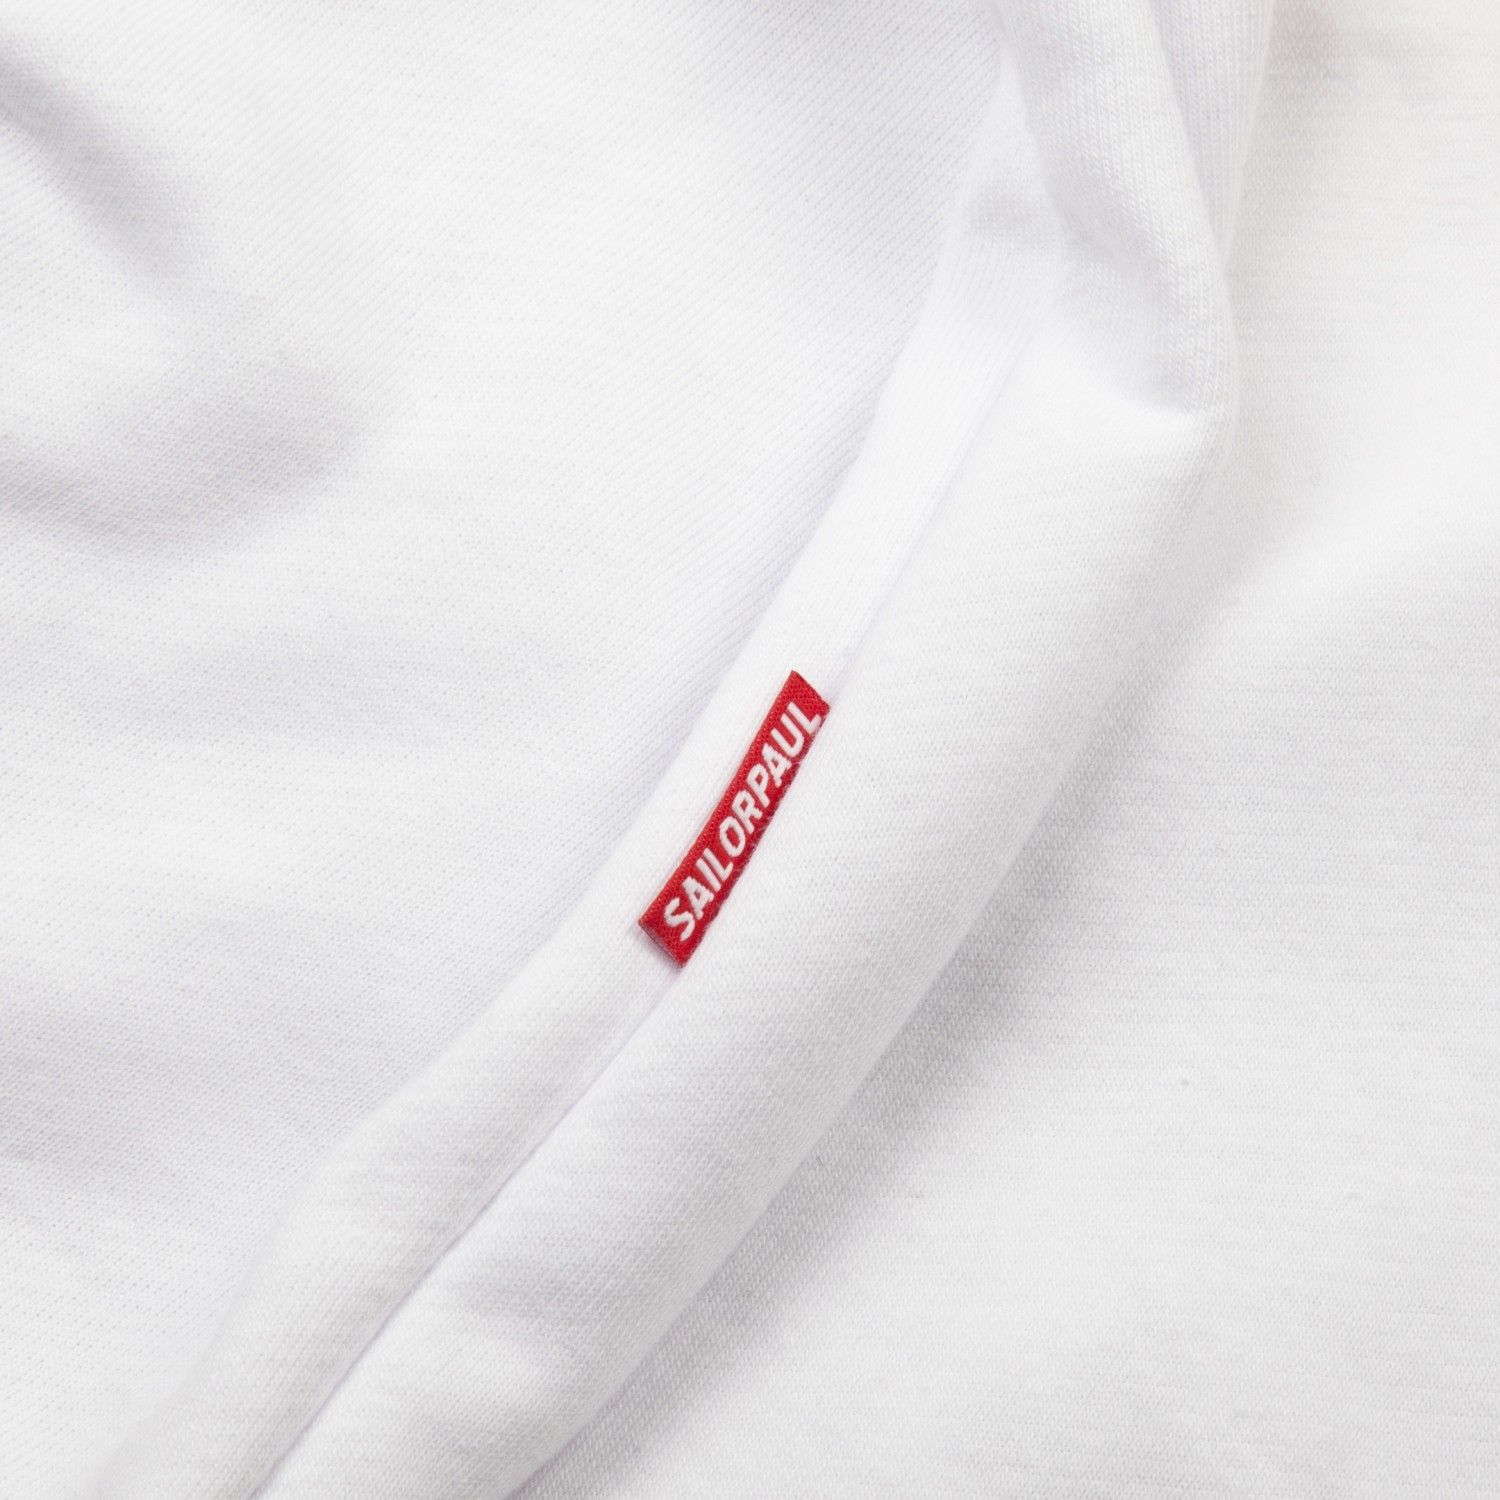 "Свитшот Basic Sample - Sweatshirt White "" Japan"""